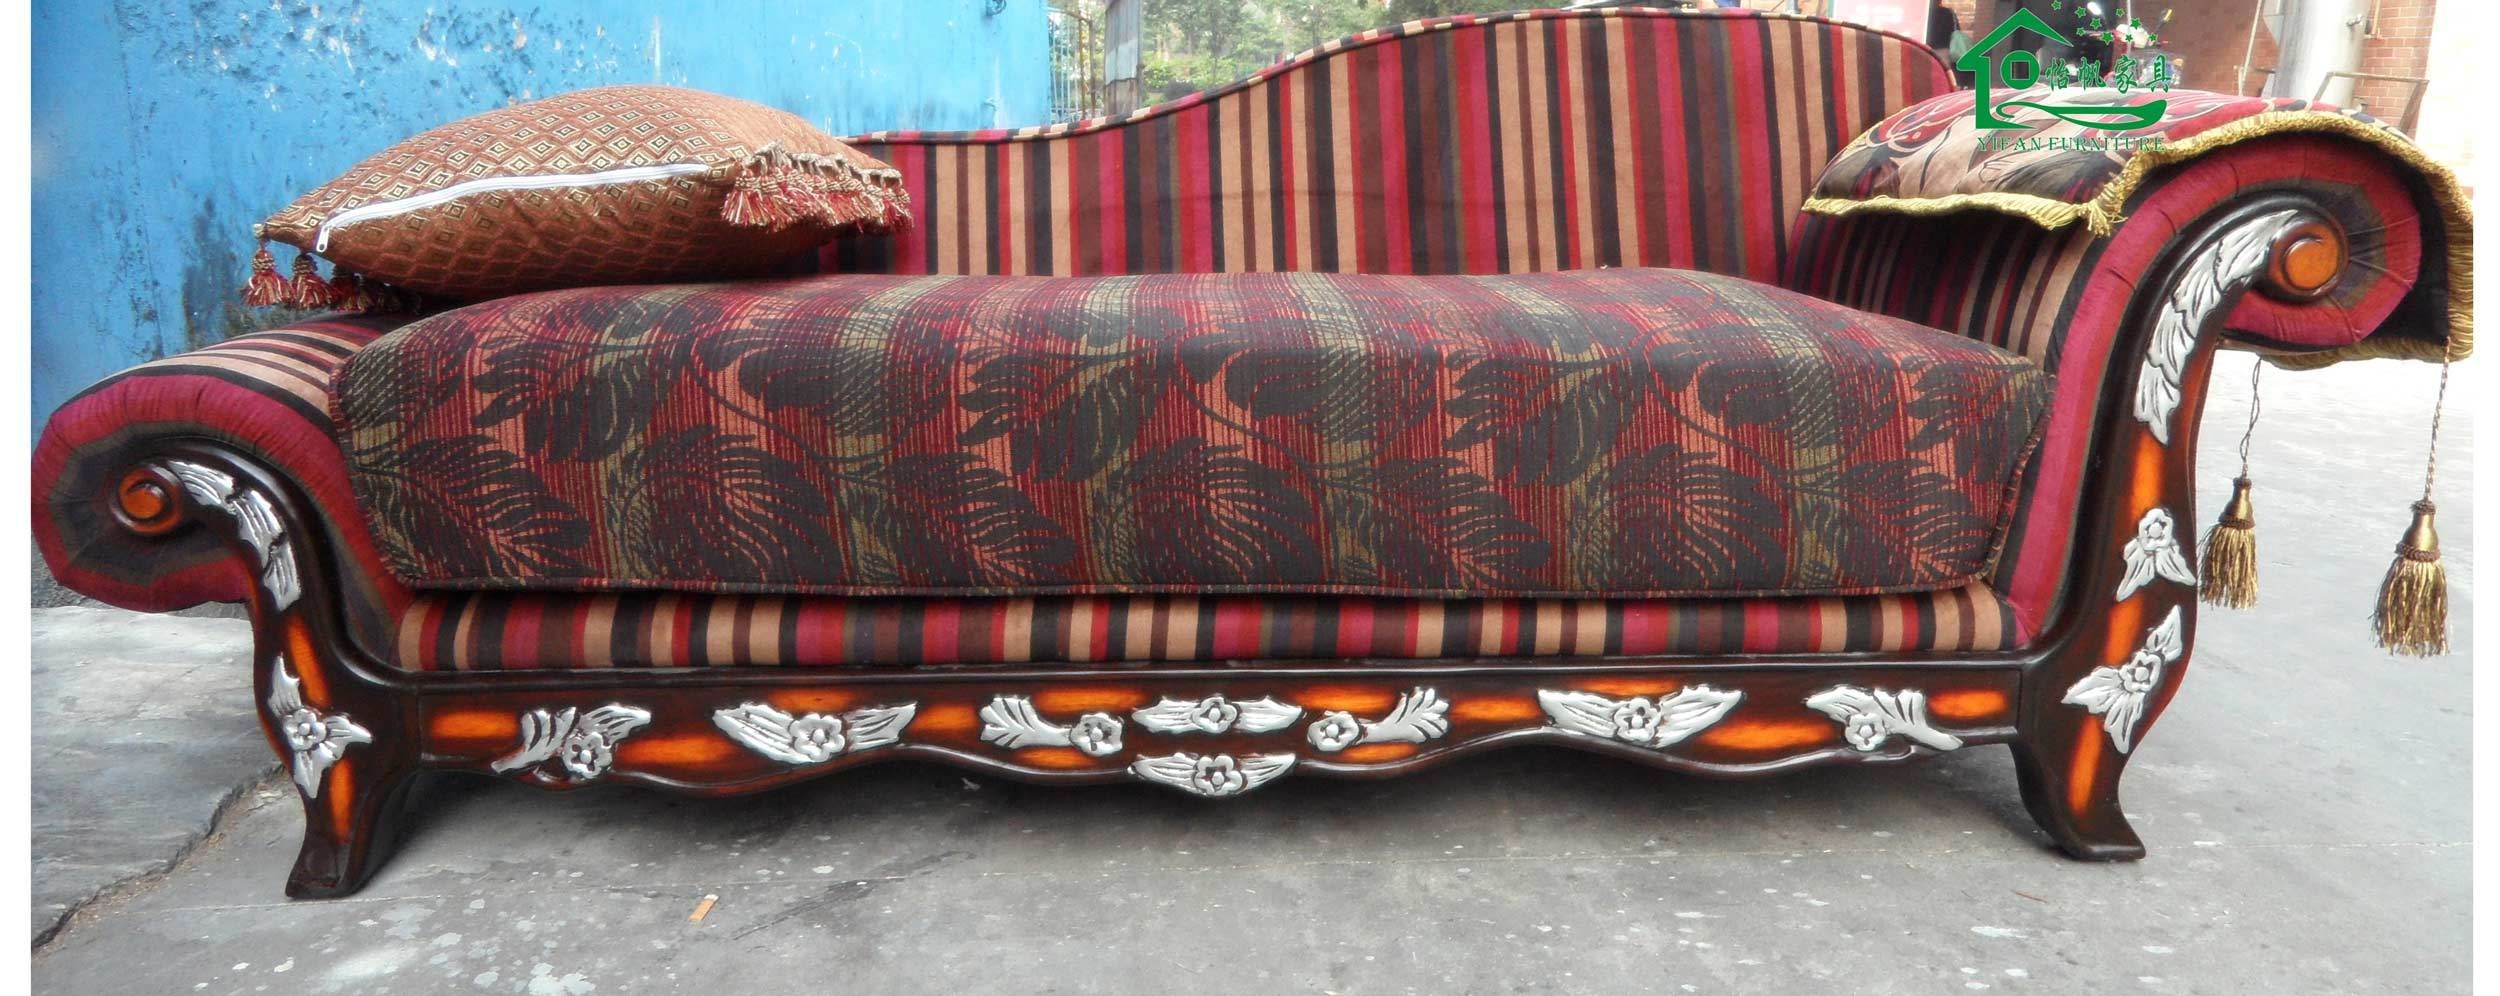 China wood chaise lounge sofa bed hotel sofa yf d29a for Chaise long sofa bed